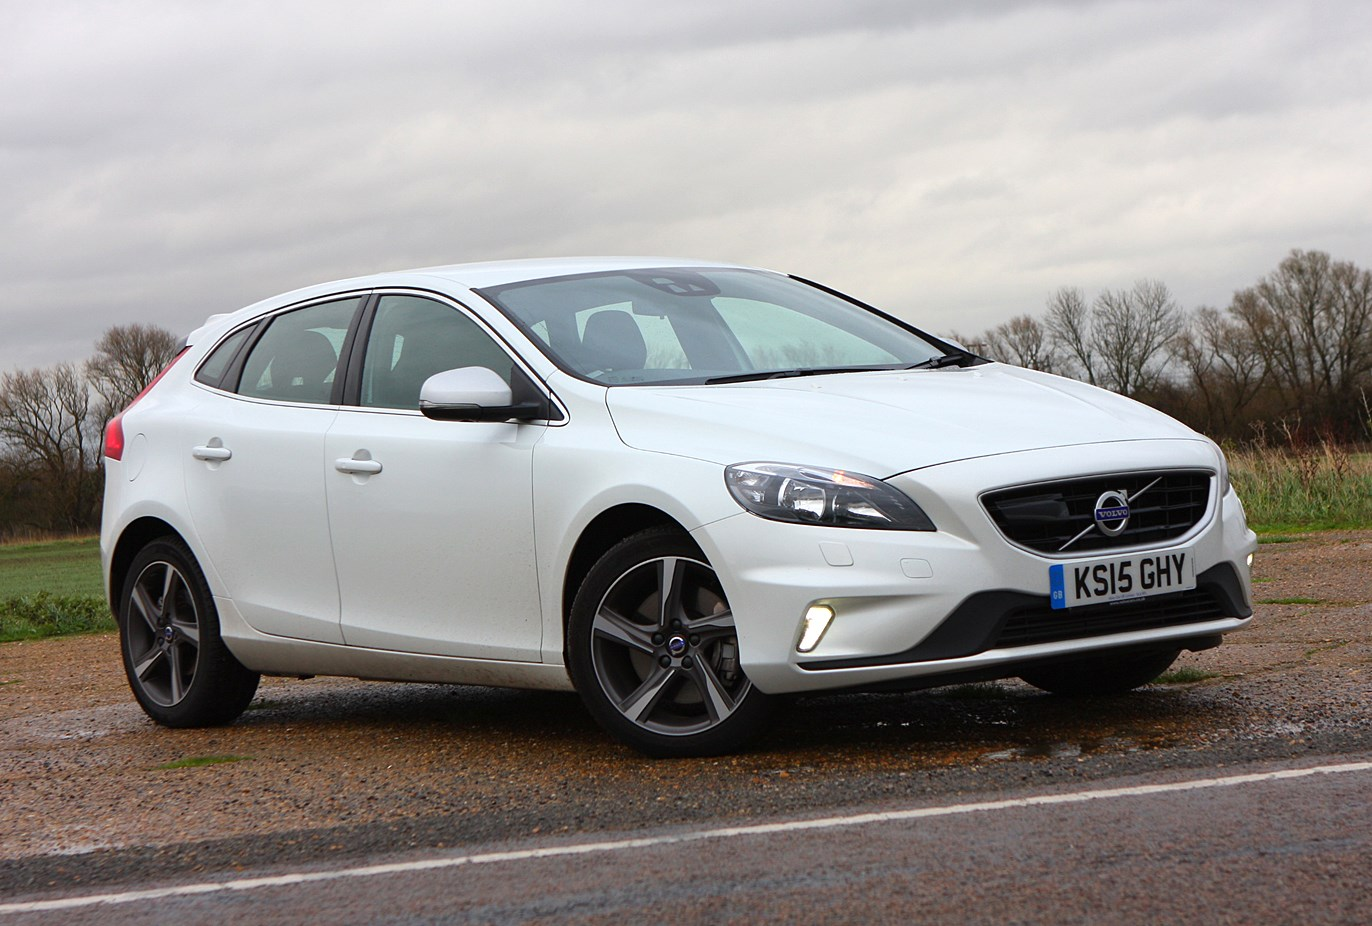 volvo v40 hatchback review 2012 parkers. Black Bedroom Furniture Sets. Home Design Ideas